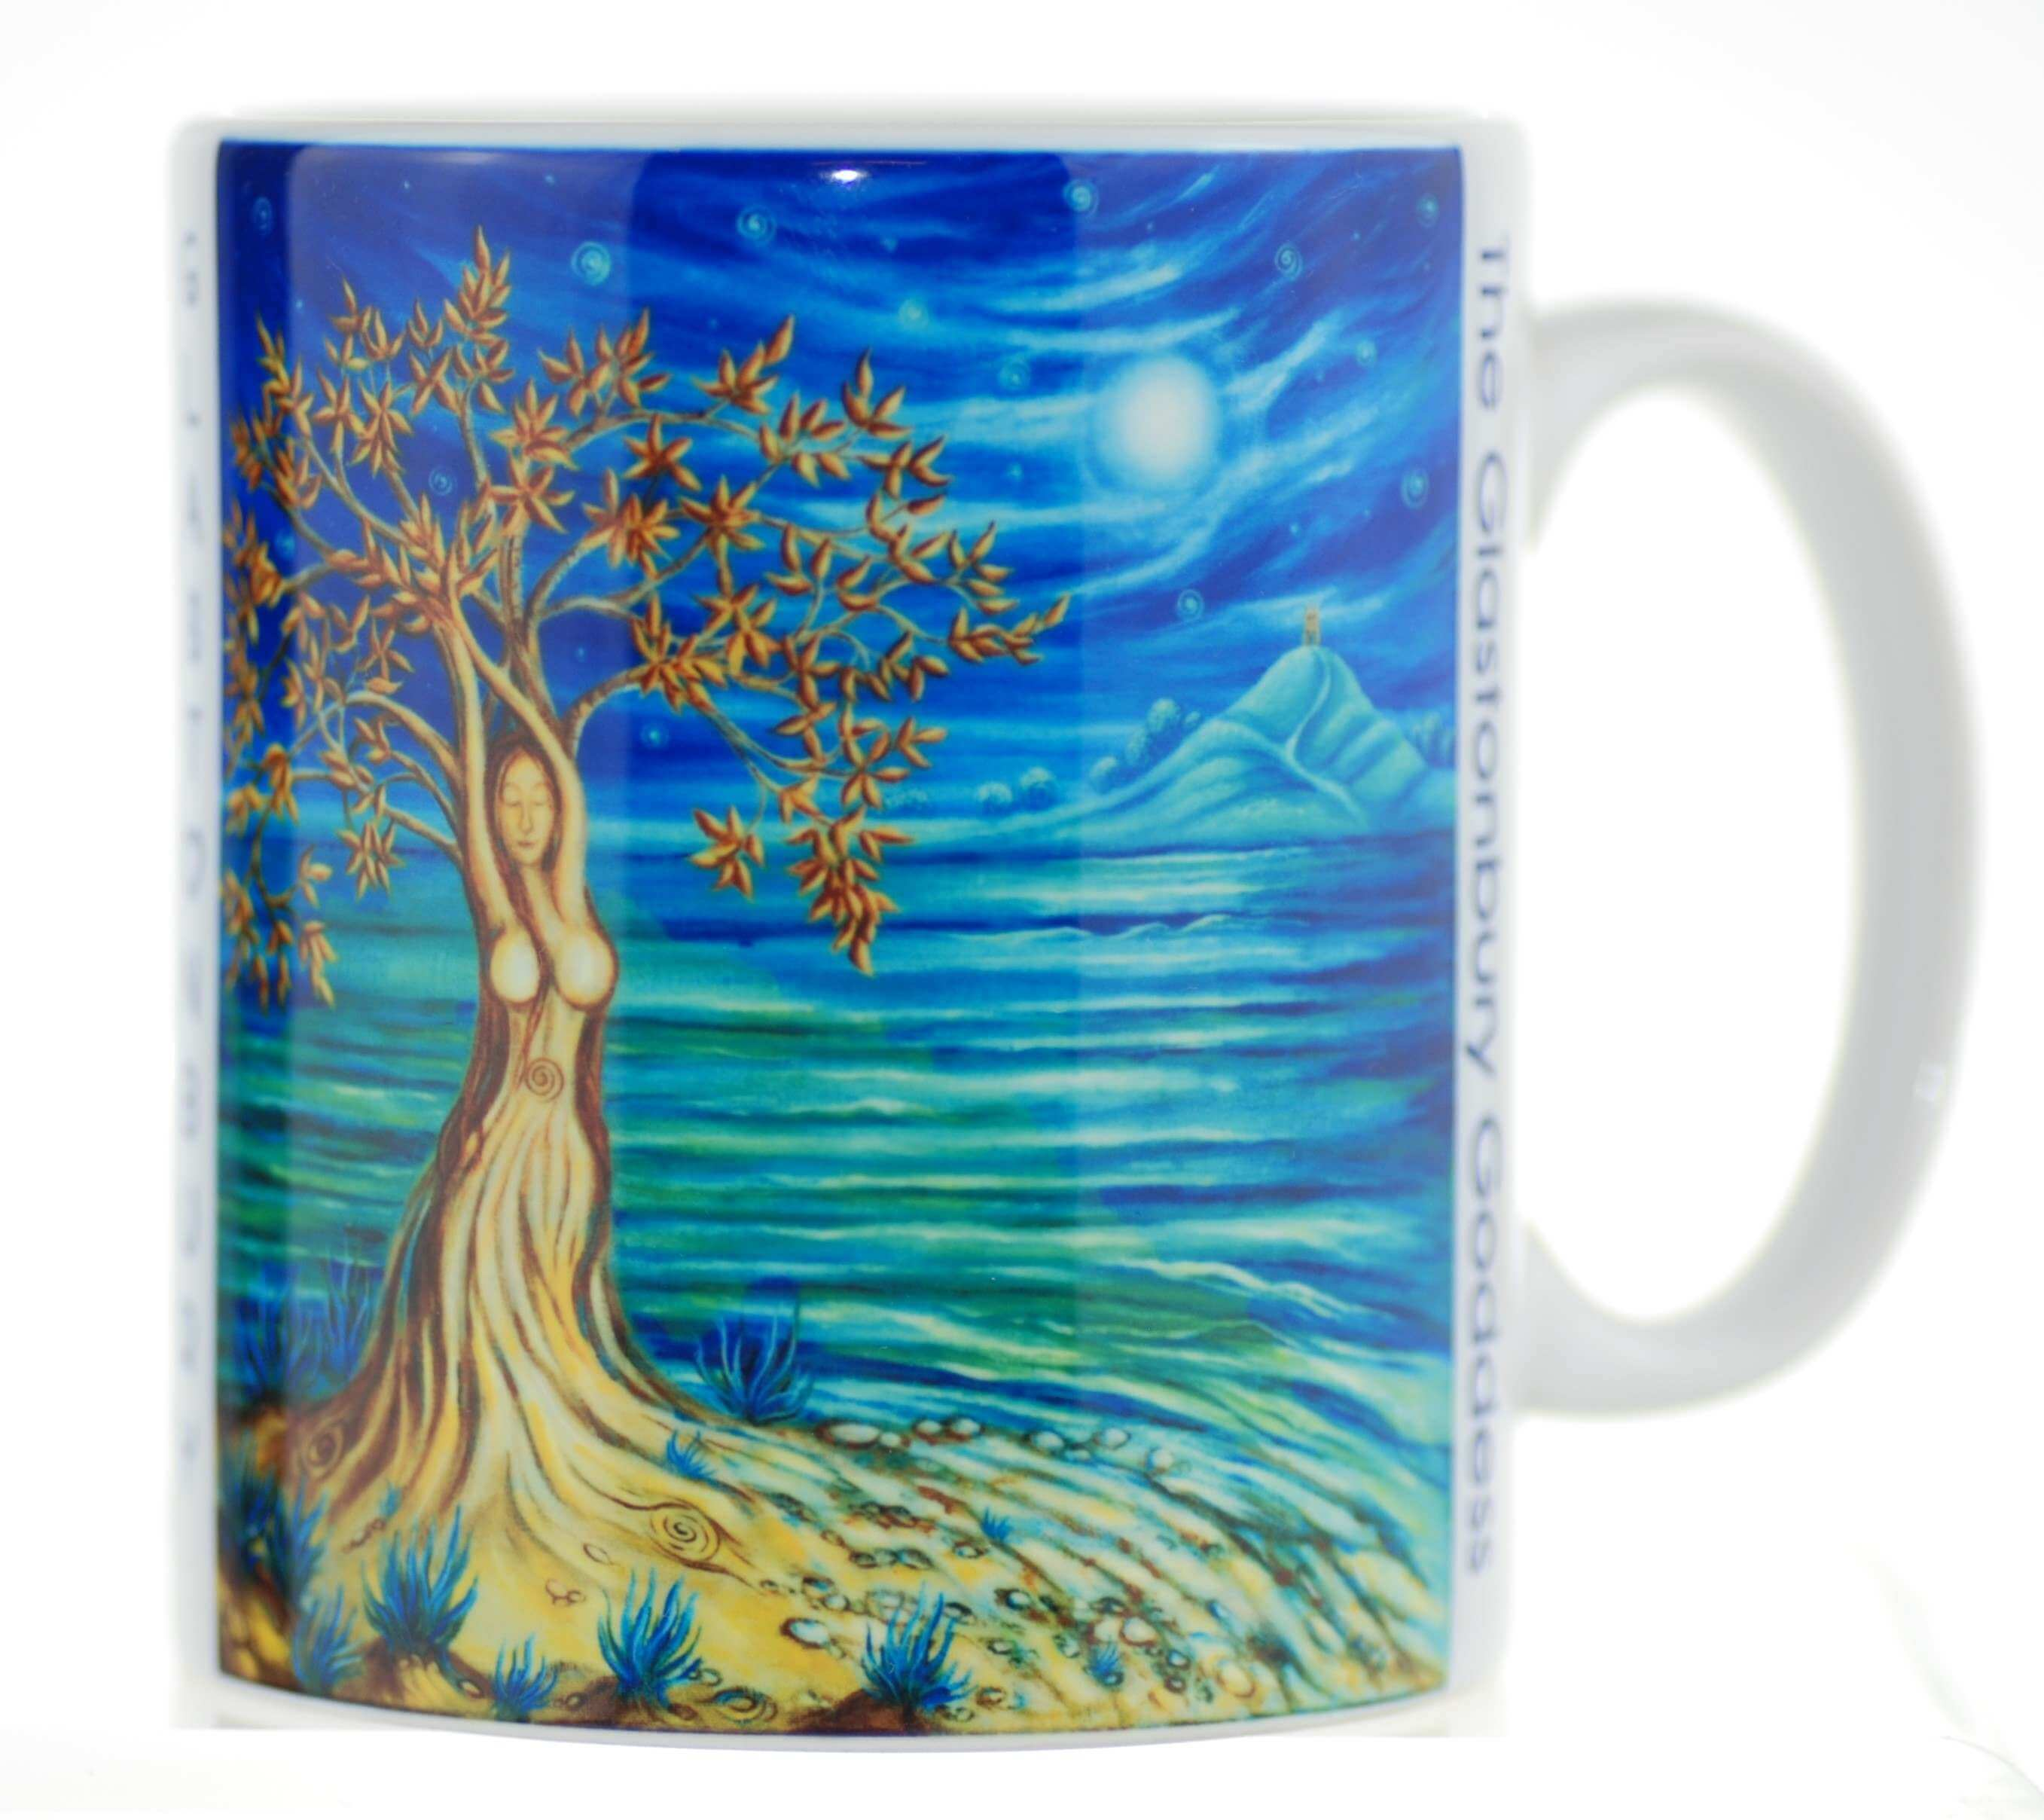 Glastonbury Goddess Mug